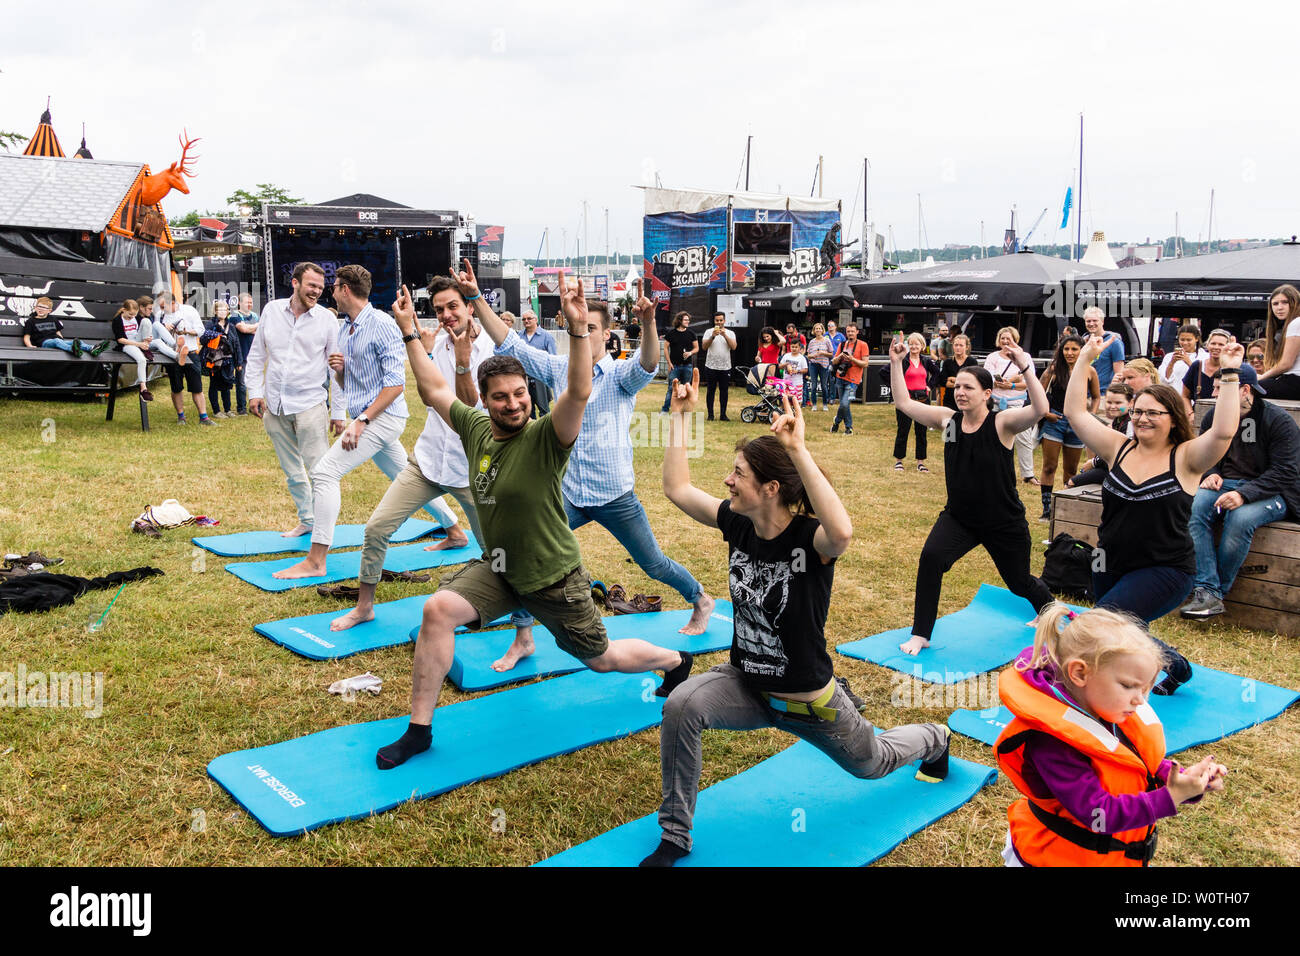 Kiel, Germany - June 16, 2018: Metal Yoga by Saskia Thode on the 2nd Stage in the Radio Bob! Rock Camp during Kiel Week 2018 Stock Photo